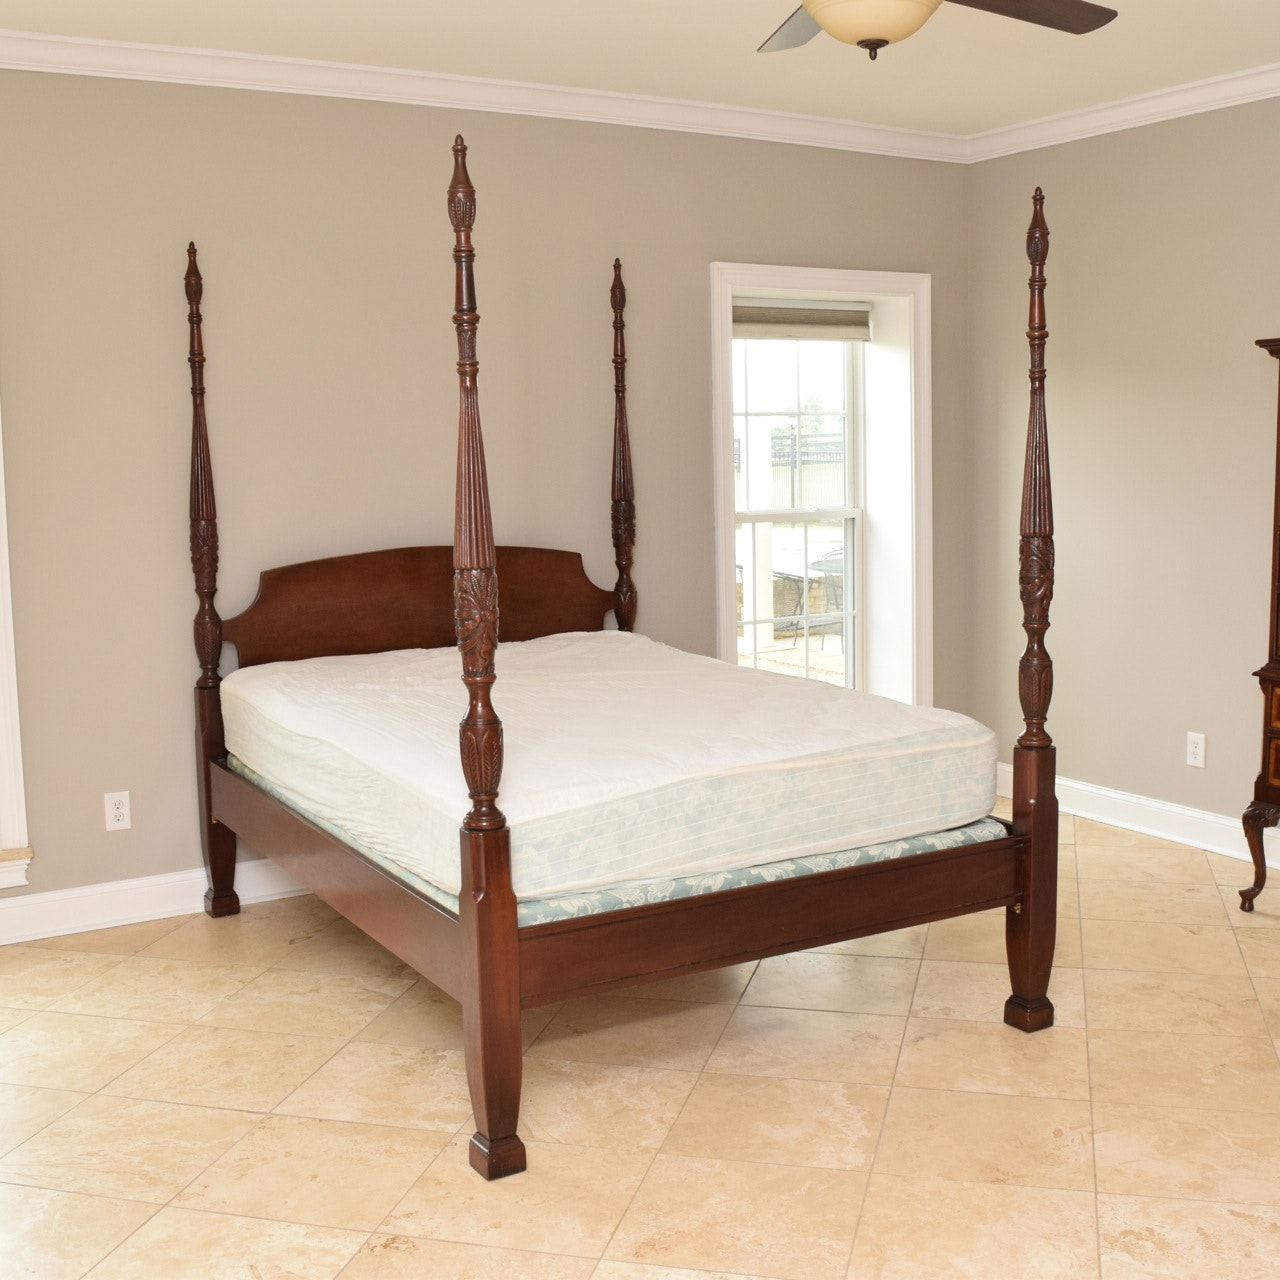 Mahogany Four Poster Queen-Size Bed